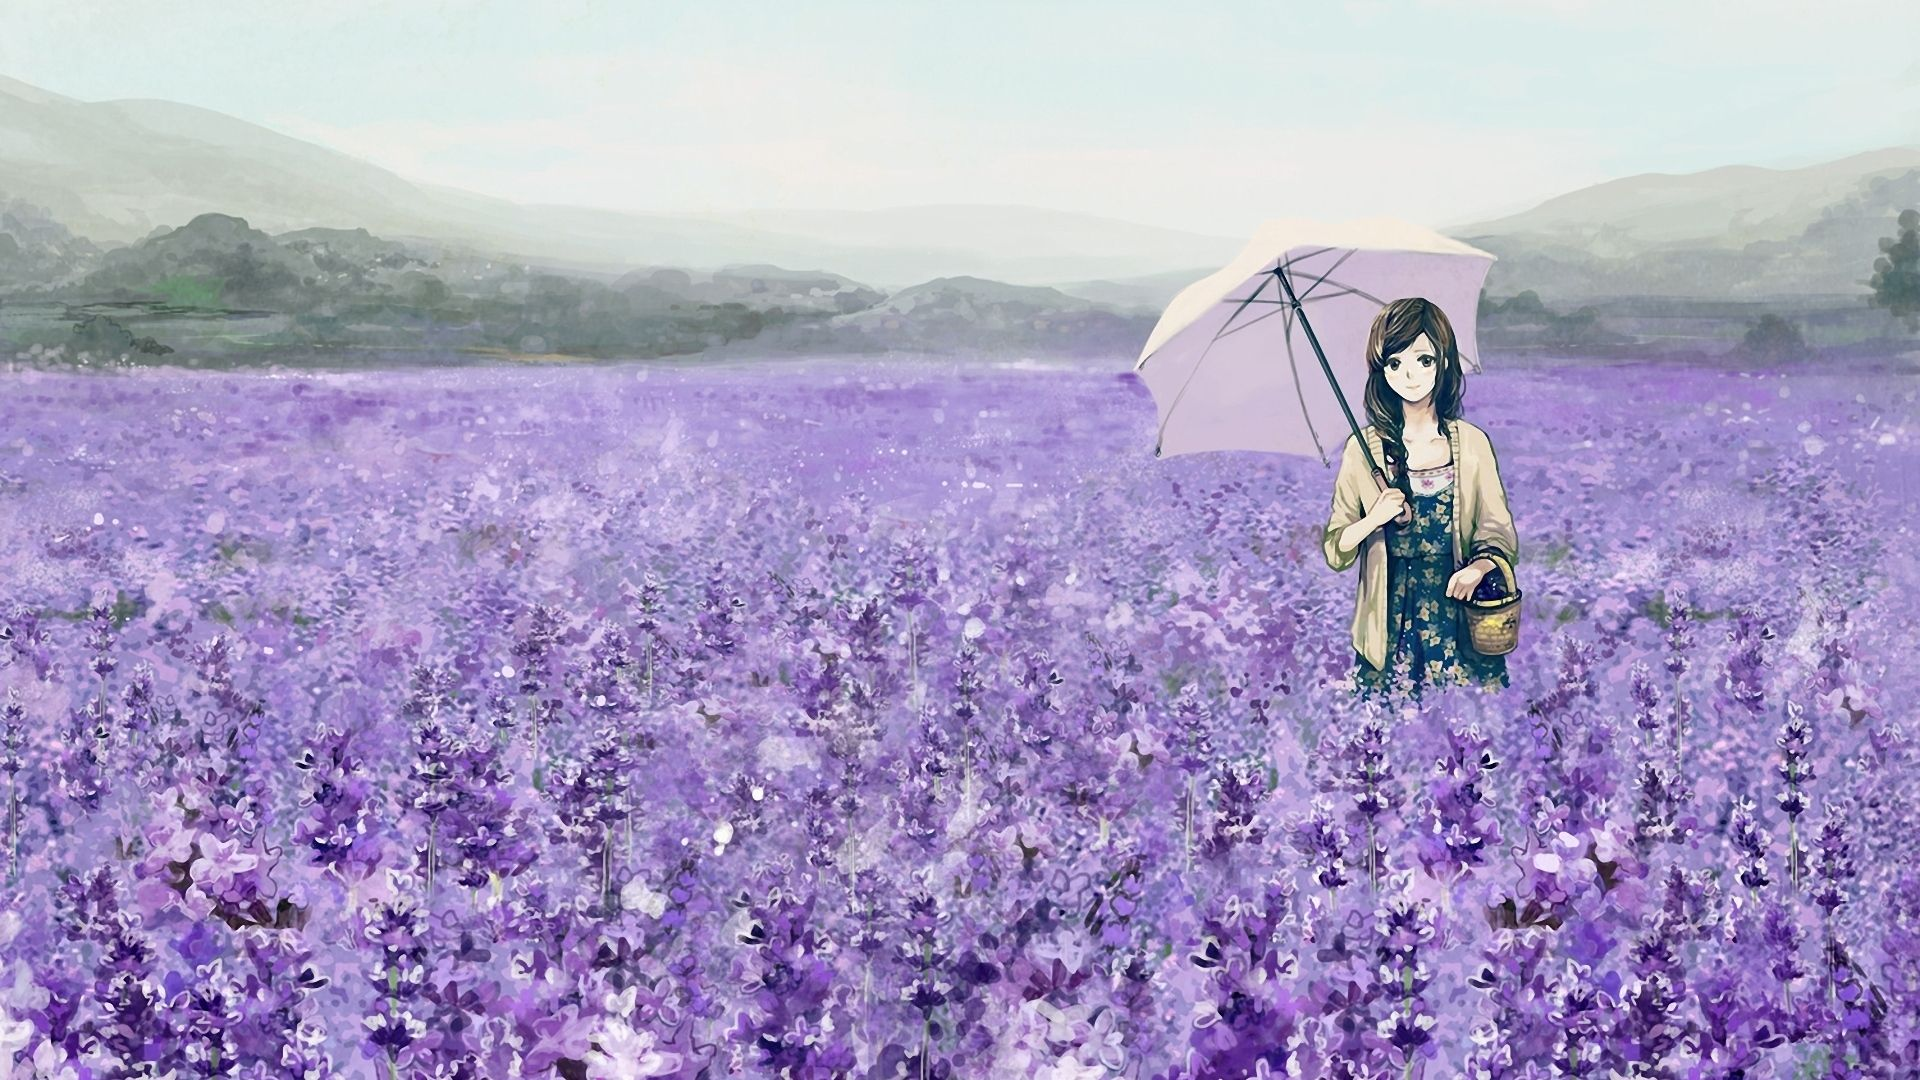 1920x1080 Wallpaper Girl Field Flowers Lavender Umbrella Basket Anime Wallpaper Anime Flower Anime Images